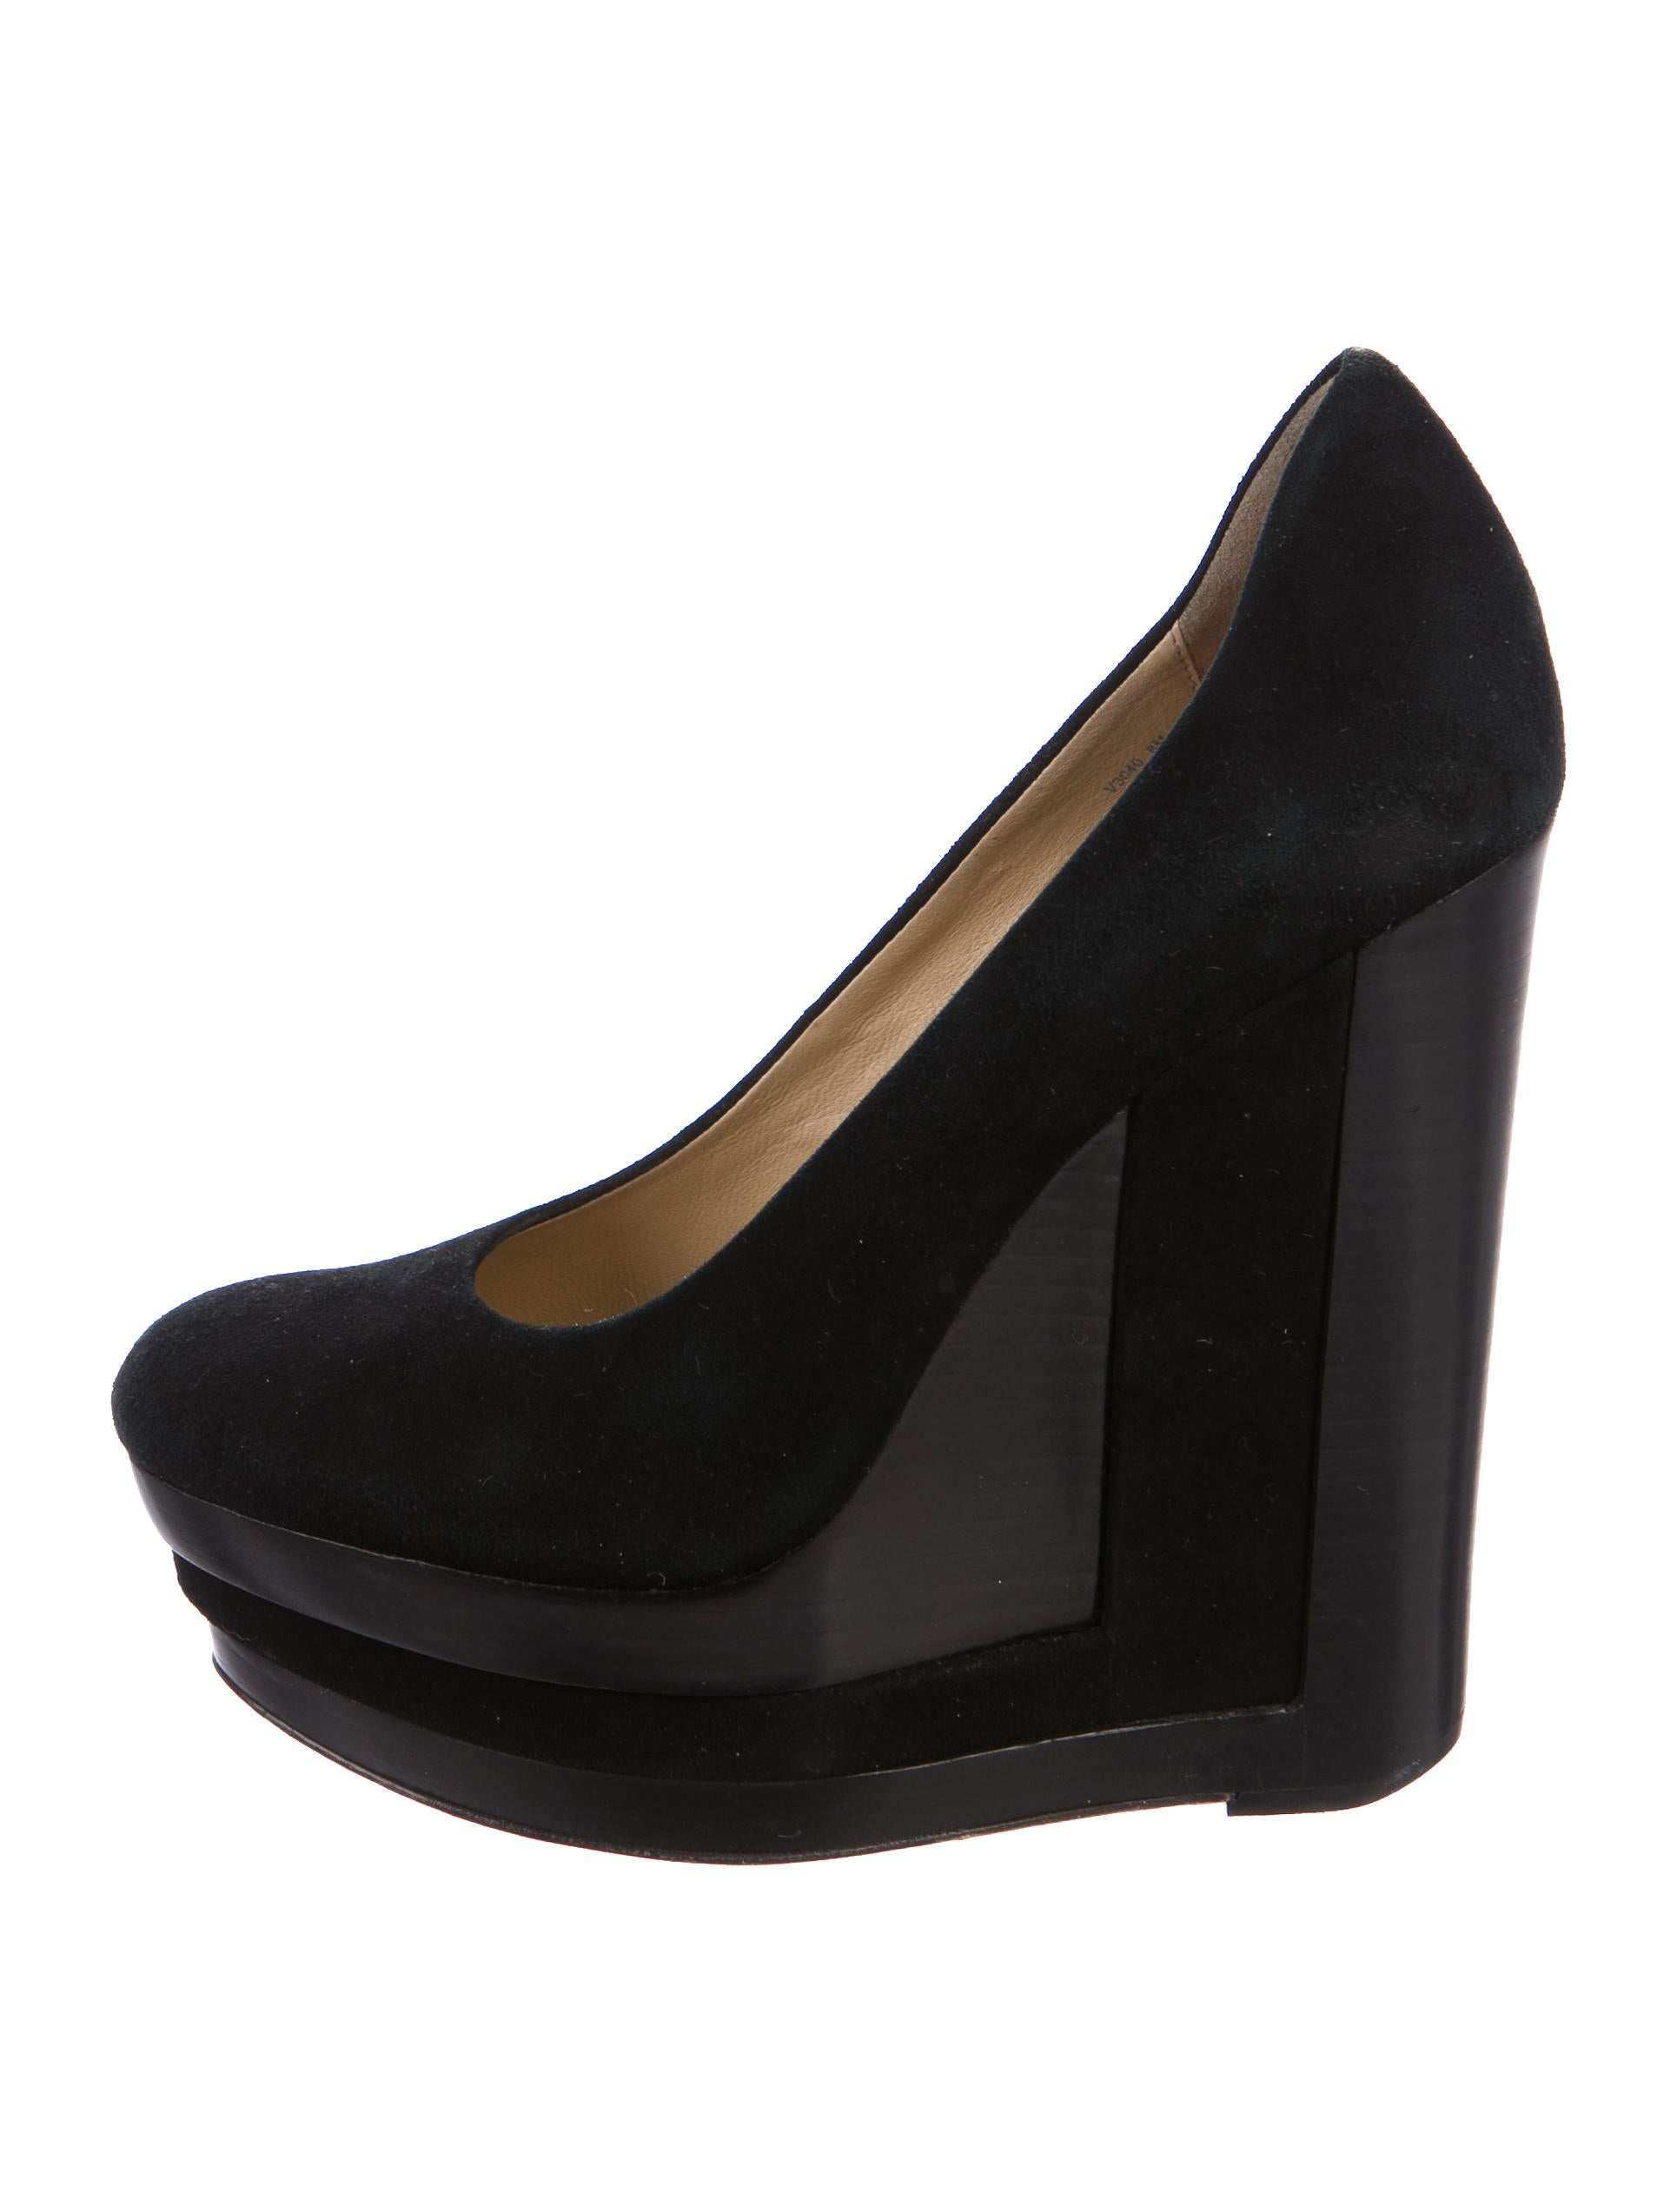 Rachel Zoe Suede Wedged Pumps cheap many kinds of cheapest price sale footaction cheap sale finishline iJT2rZt